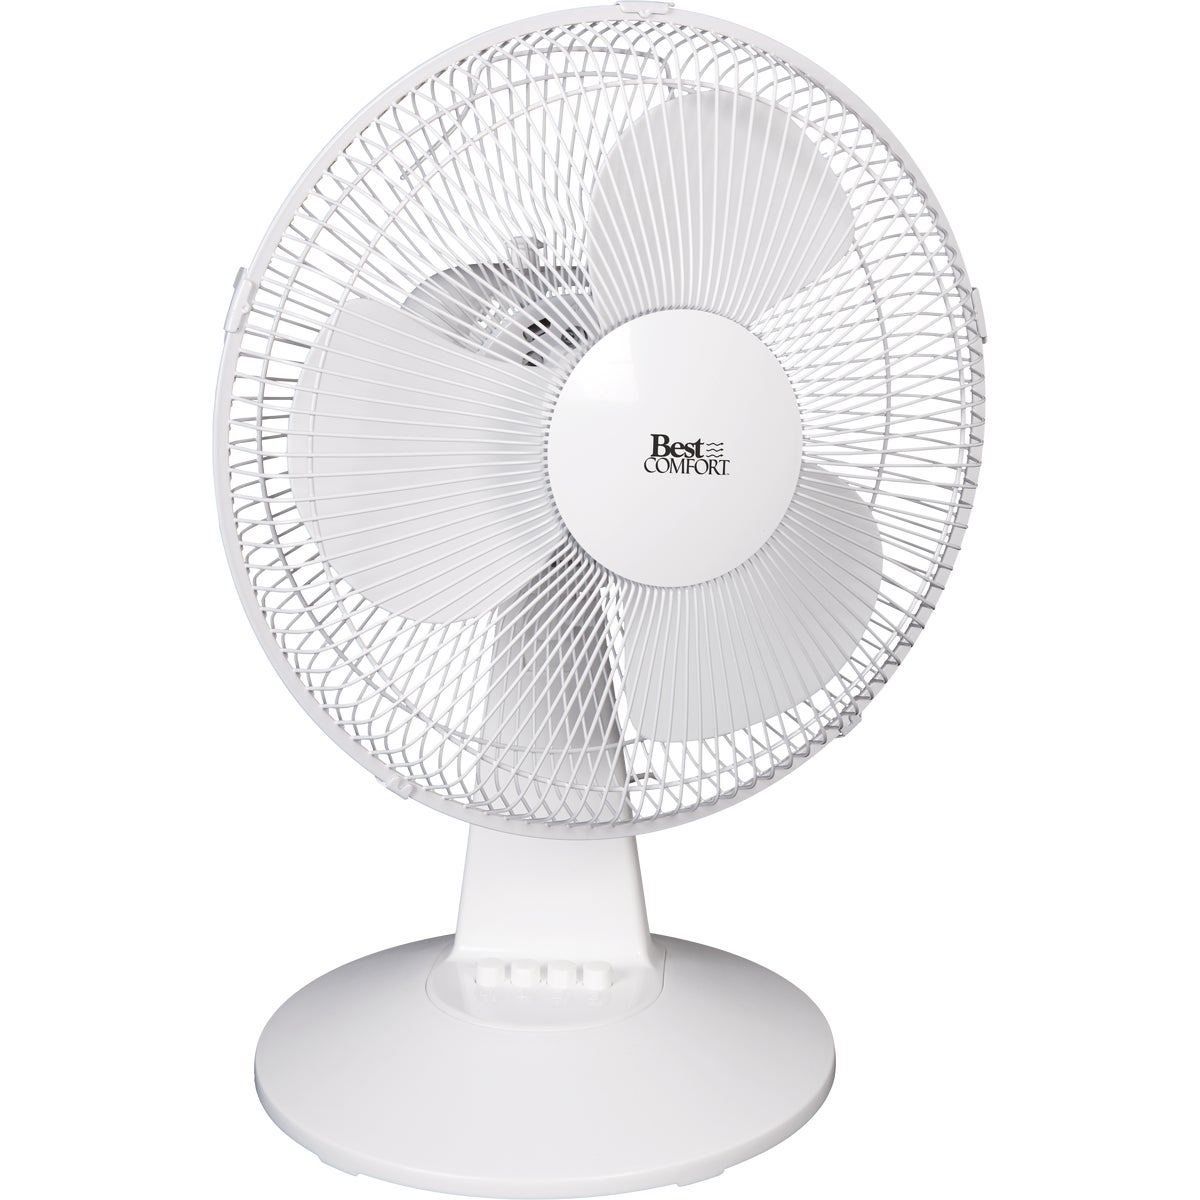 Best Comfort Oscillating Table Fan, FT40-16J